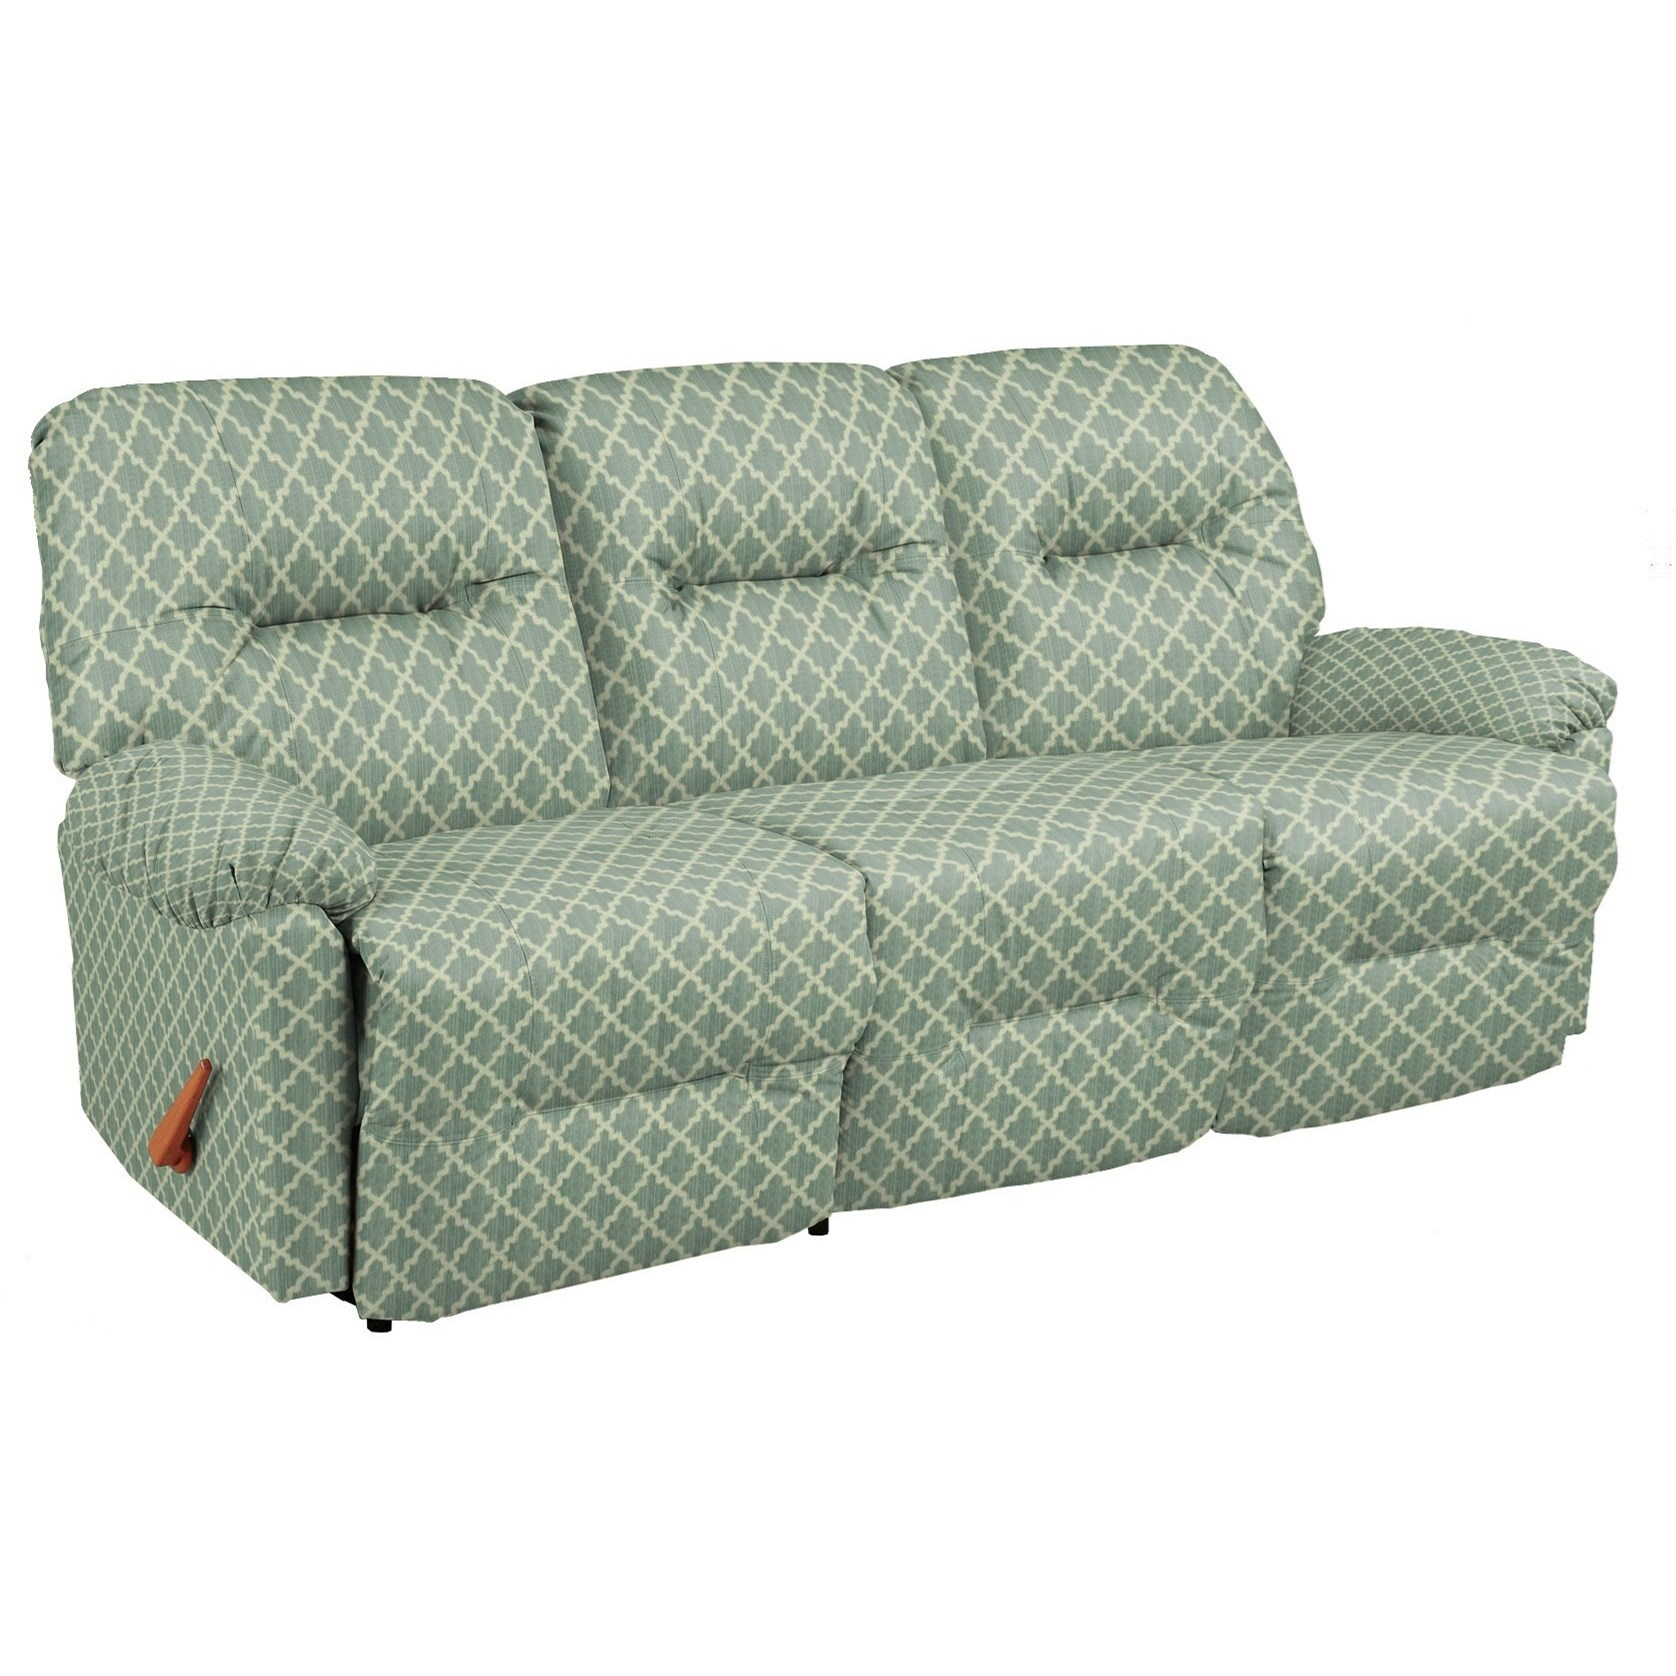 Best Home Furnishings Redford Reclining Sofa - Item Number: -679135843-28842